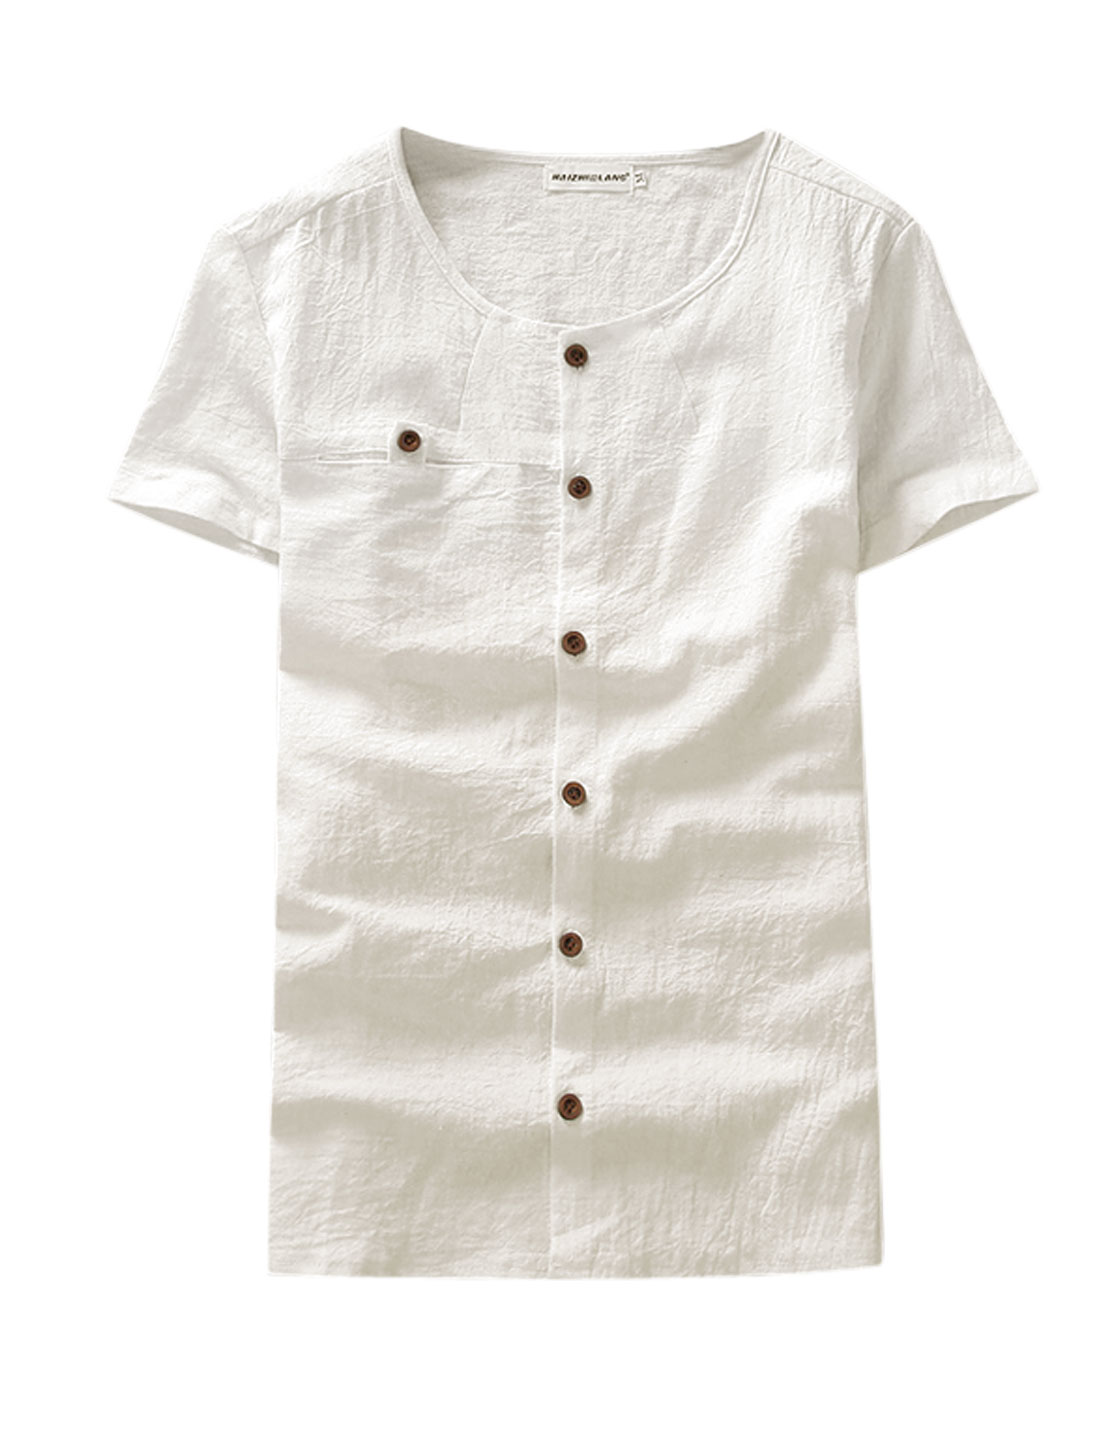 Men Round Neck Short Sleeves Single Breasted Textured Linen Tee White M